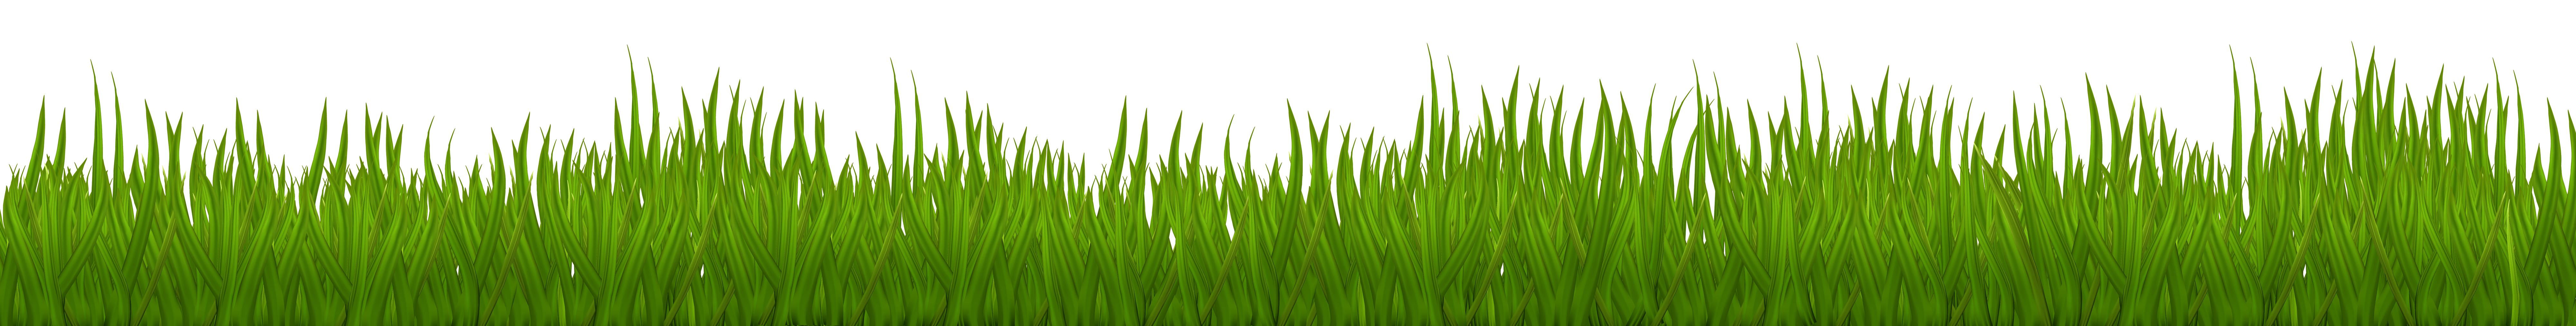 Grass clipart png. Clip art image gallery